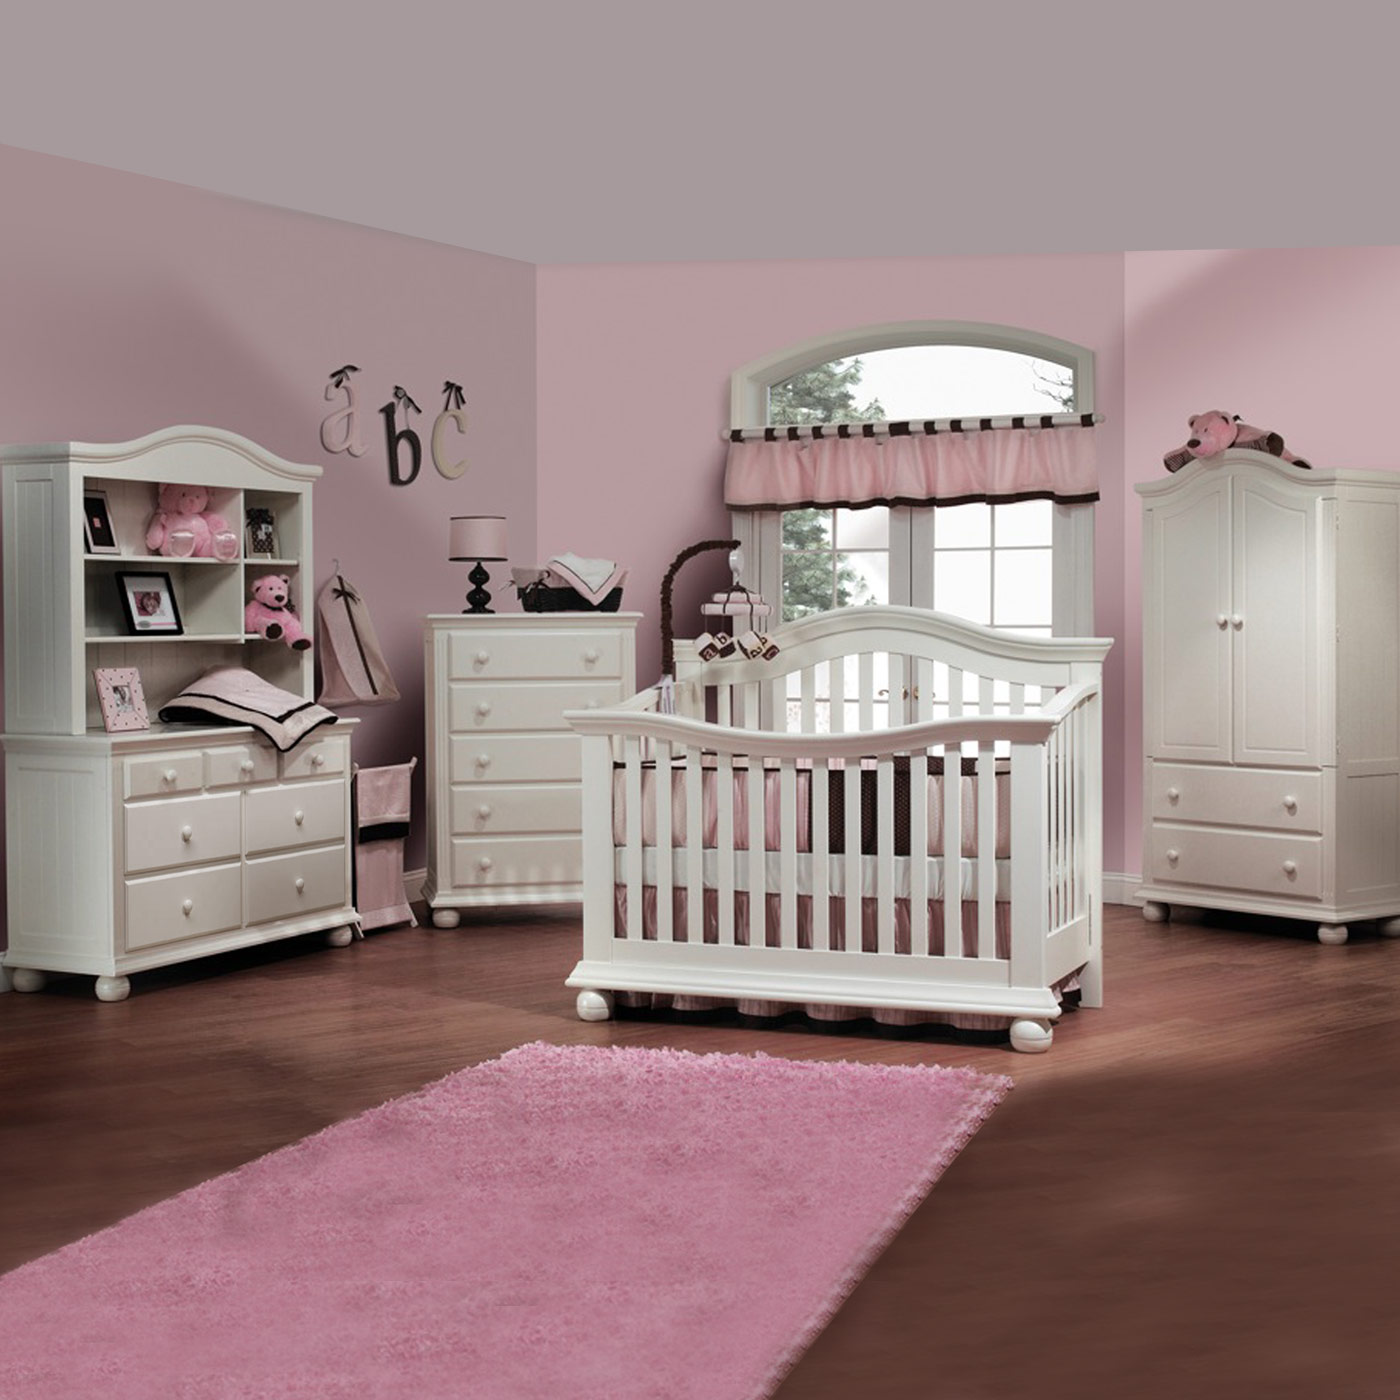 Incroyable ... Piece Nursery Set Couture Convertible Crib Double Dresser Hutch Drawer  Dresser And Armoire In French White Free Shipping With Armoire For Baby Room